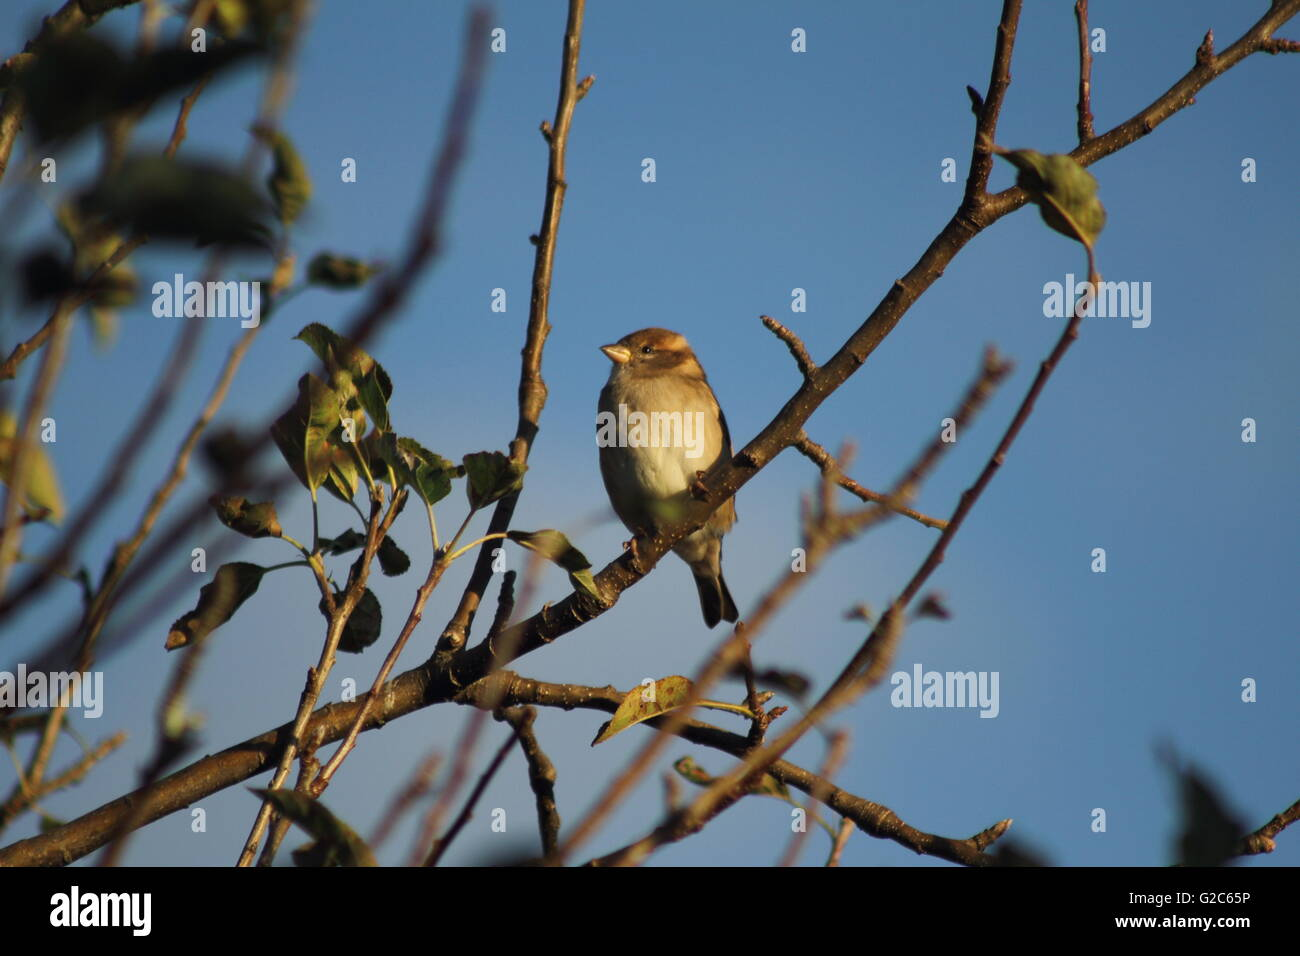 A house sparrow (Passer domesticus) stopping by to perch on a branch Stock Photo